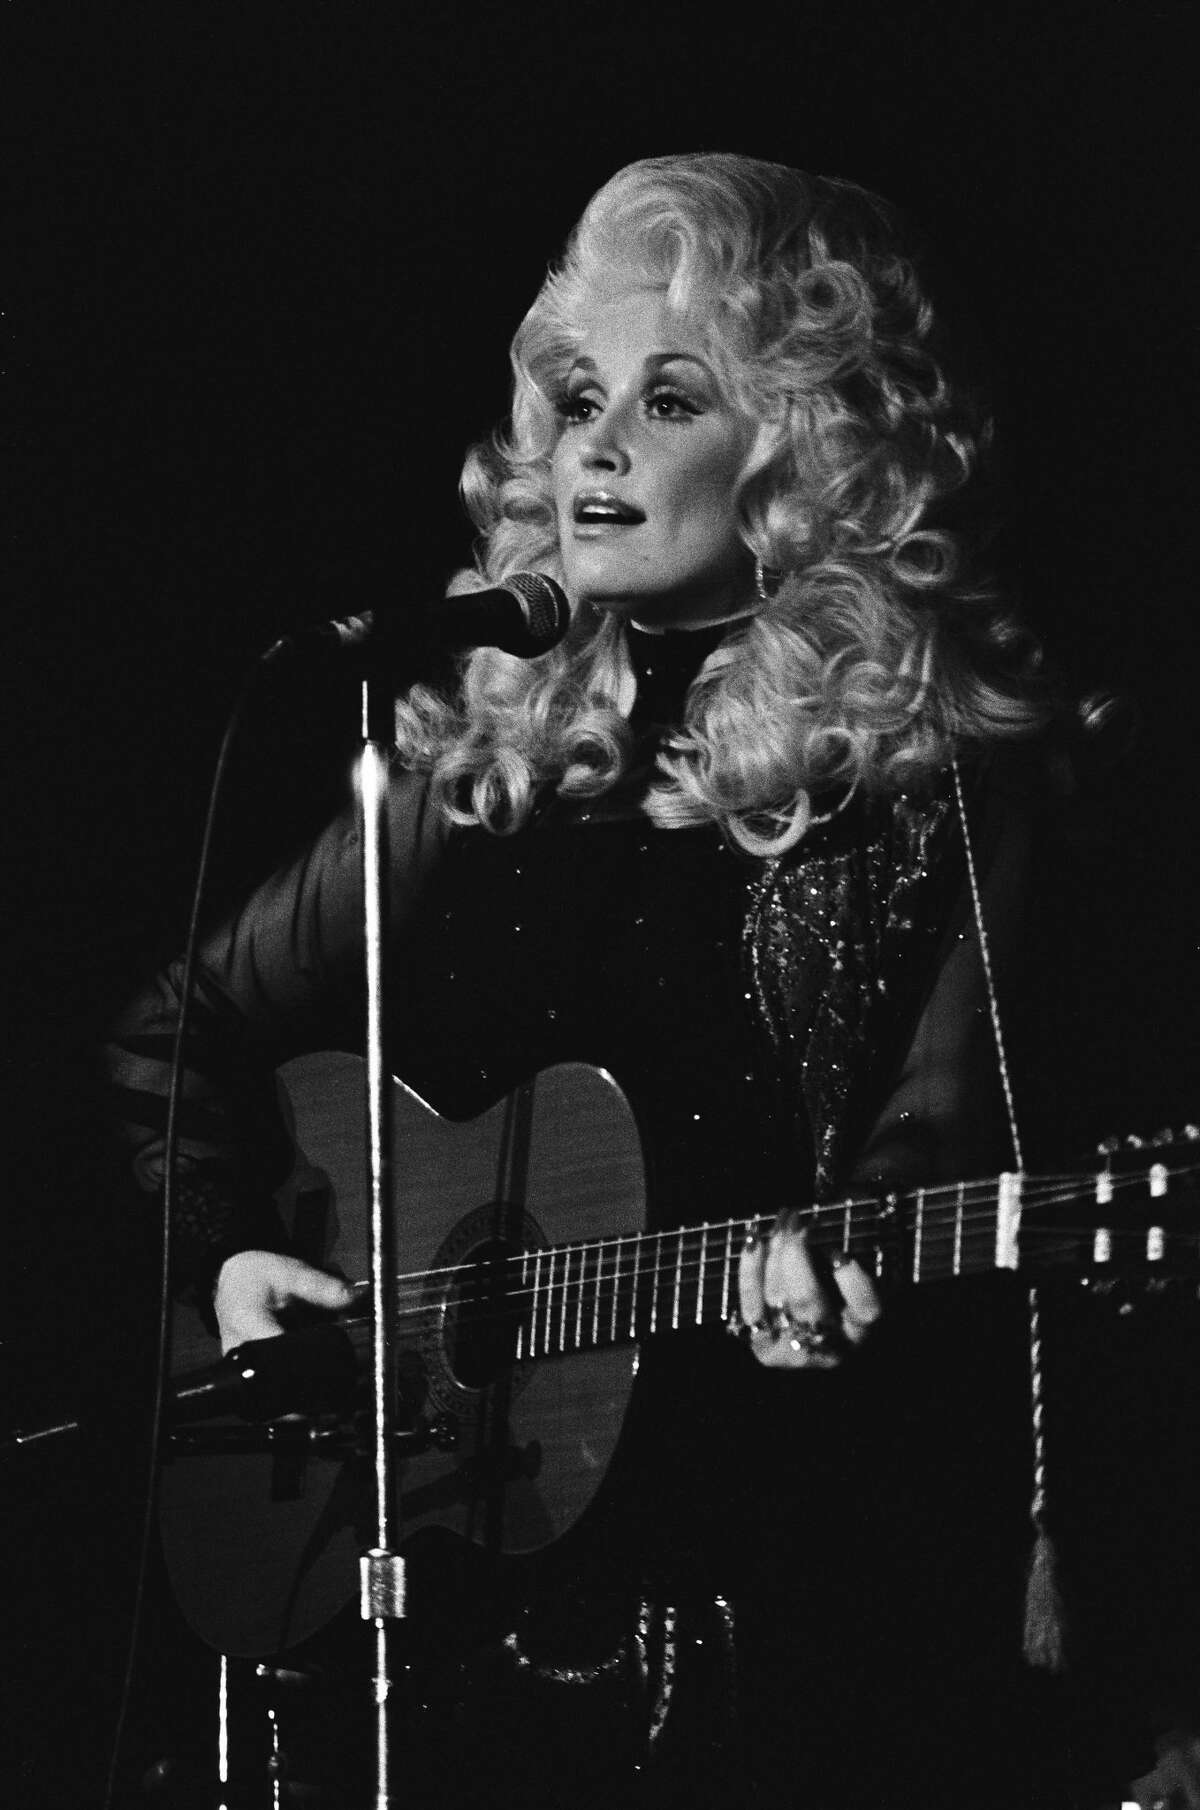 Dolly Parton performs live at The Boarding House Nightclub in 1976 in San Francisco.